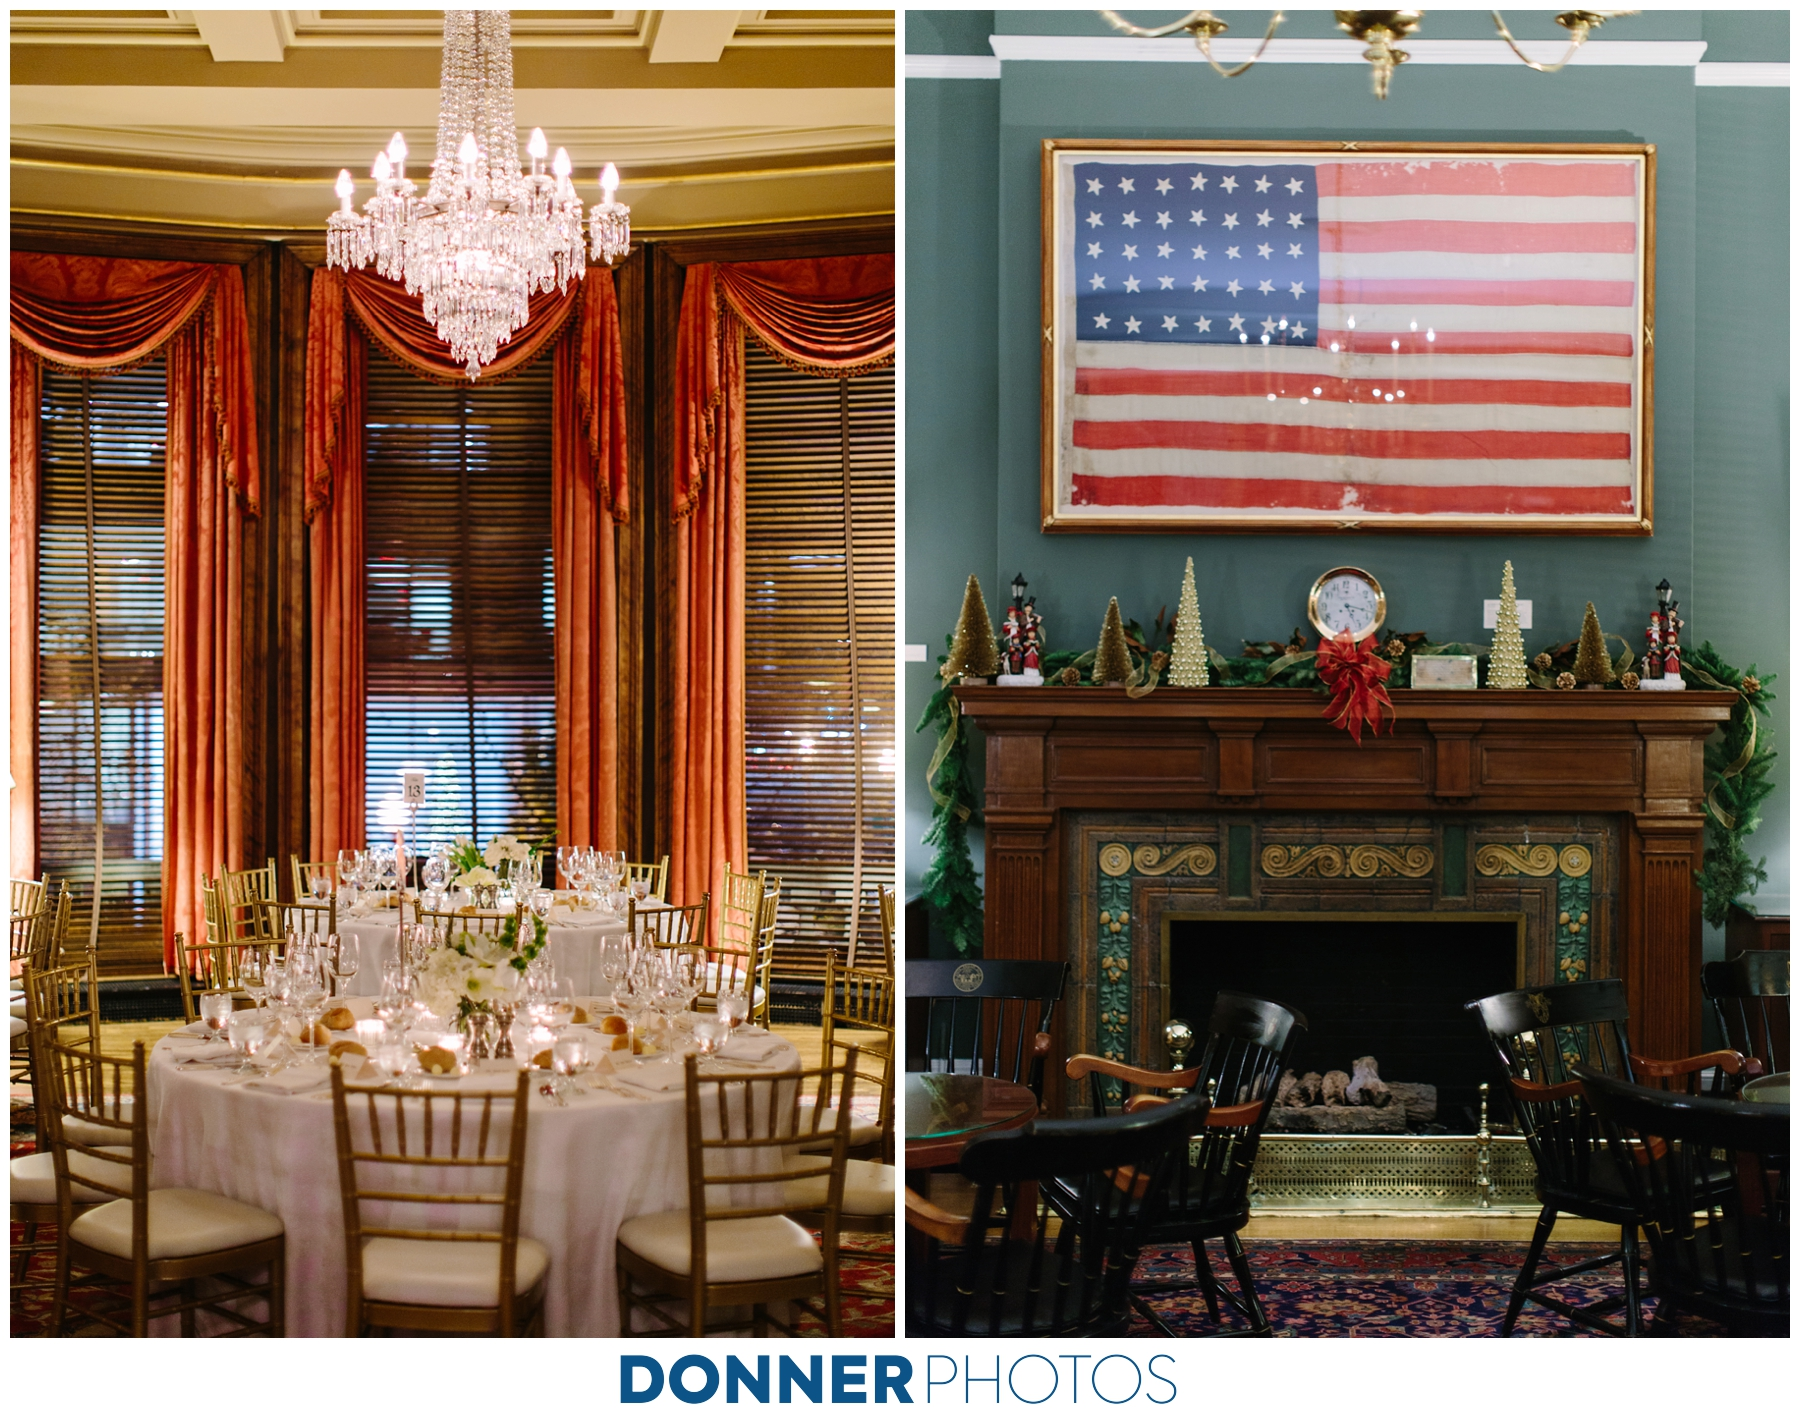 1000 Images About Washington Dc Area Weddings On Pinterest: Donner Photos